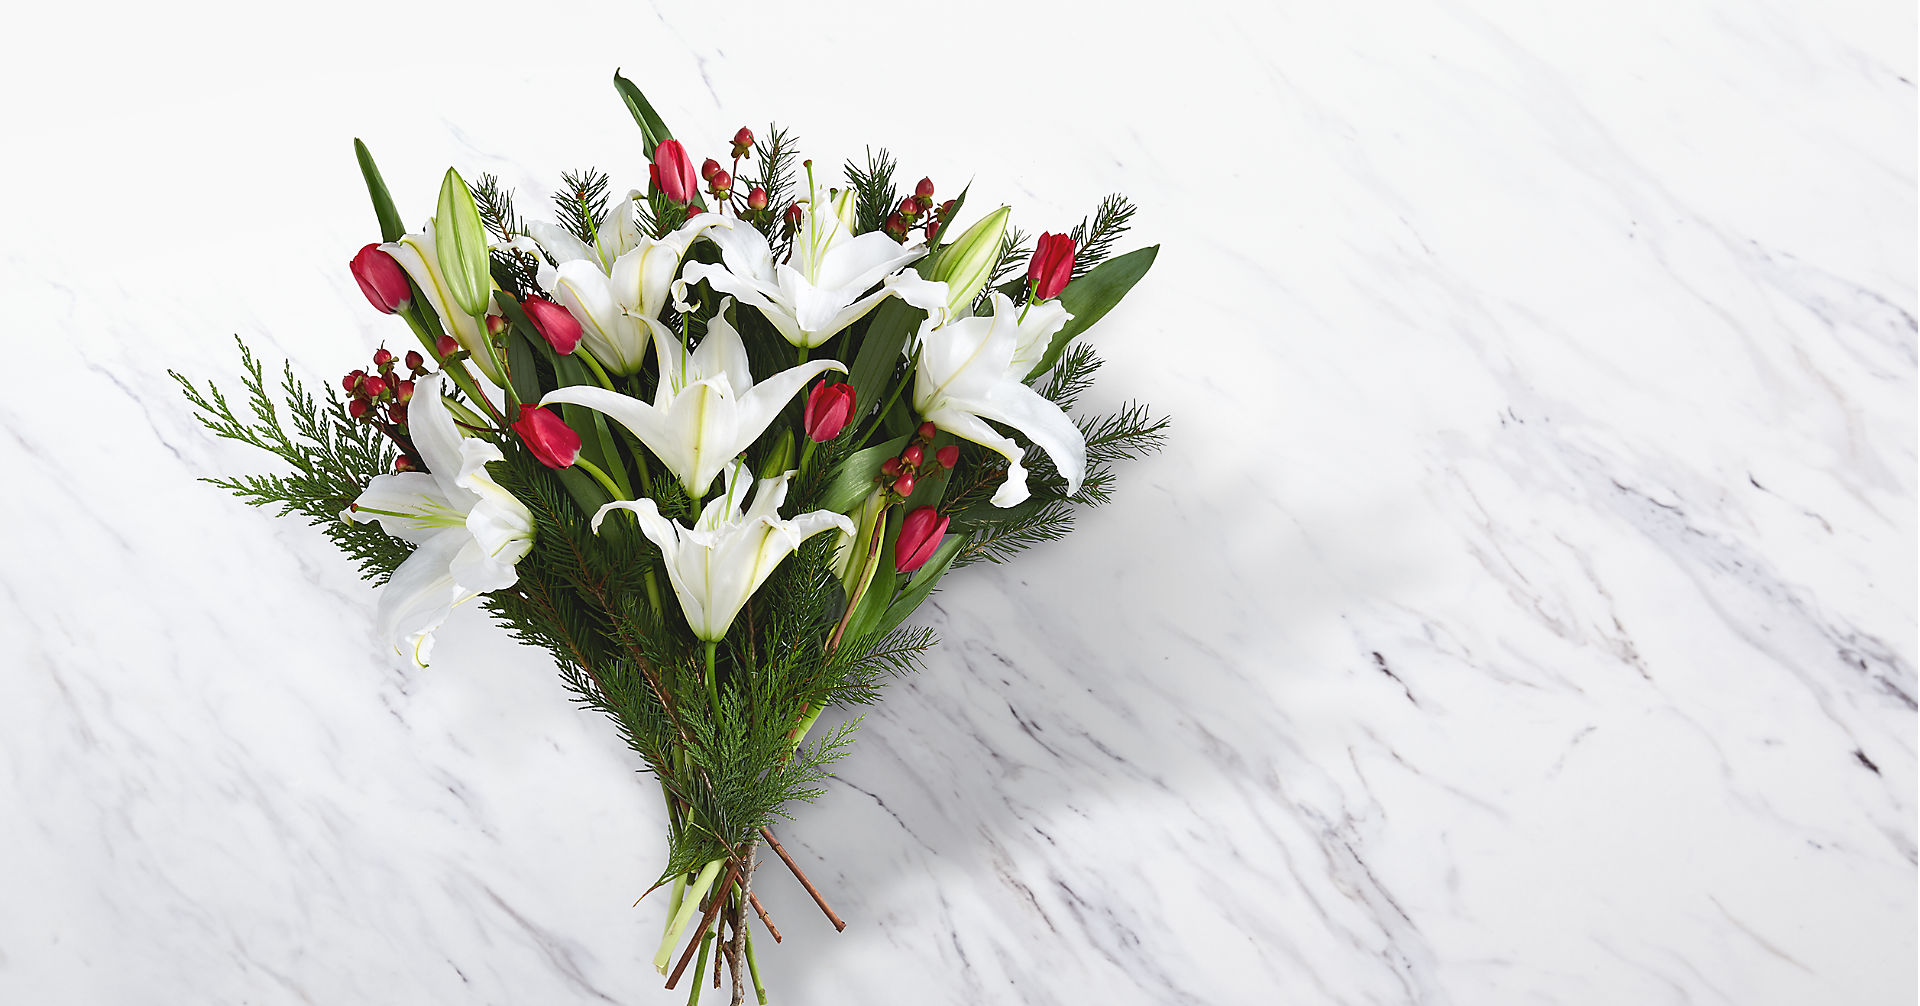 Christmas Bouquet - Image 1 Of 2